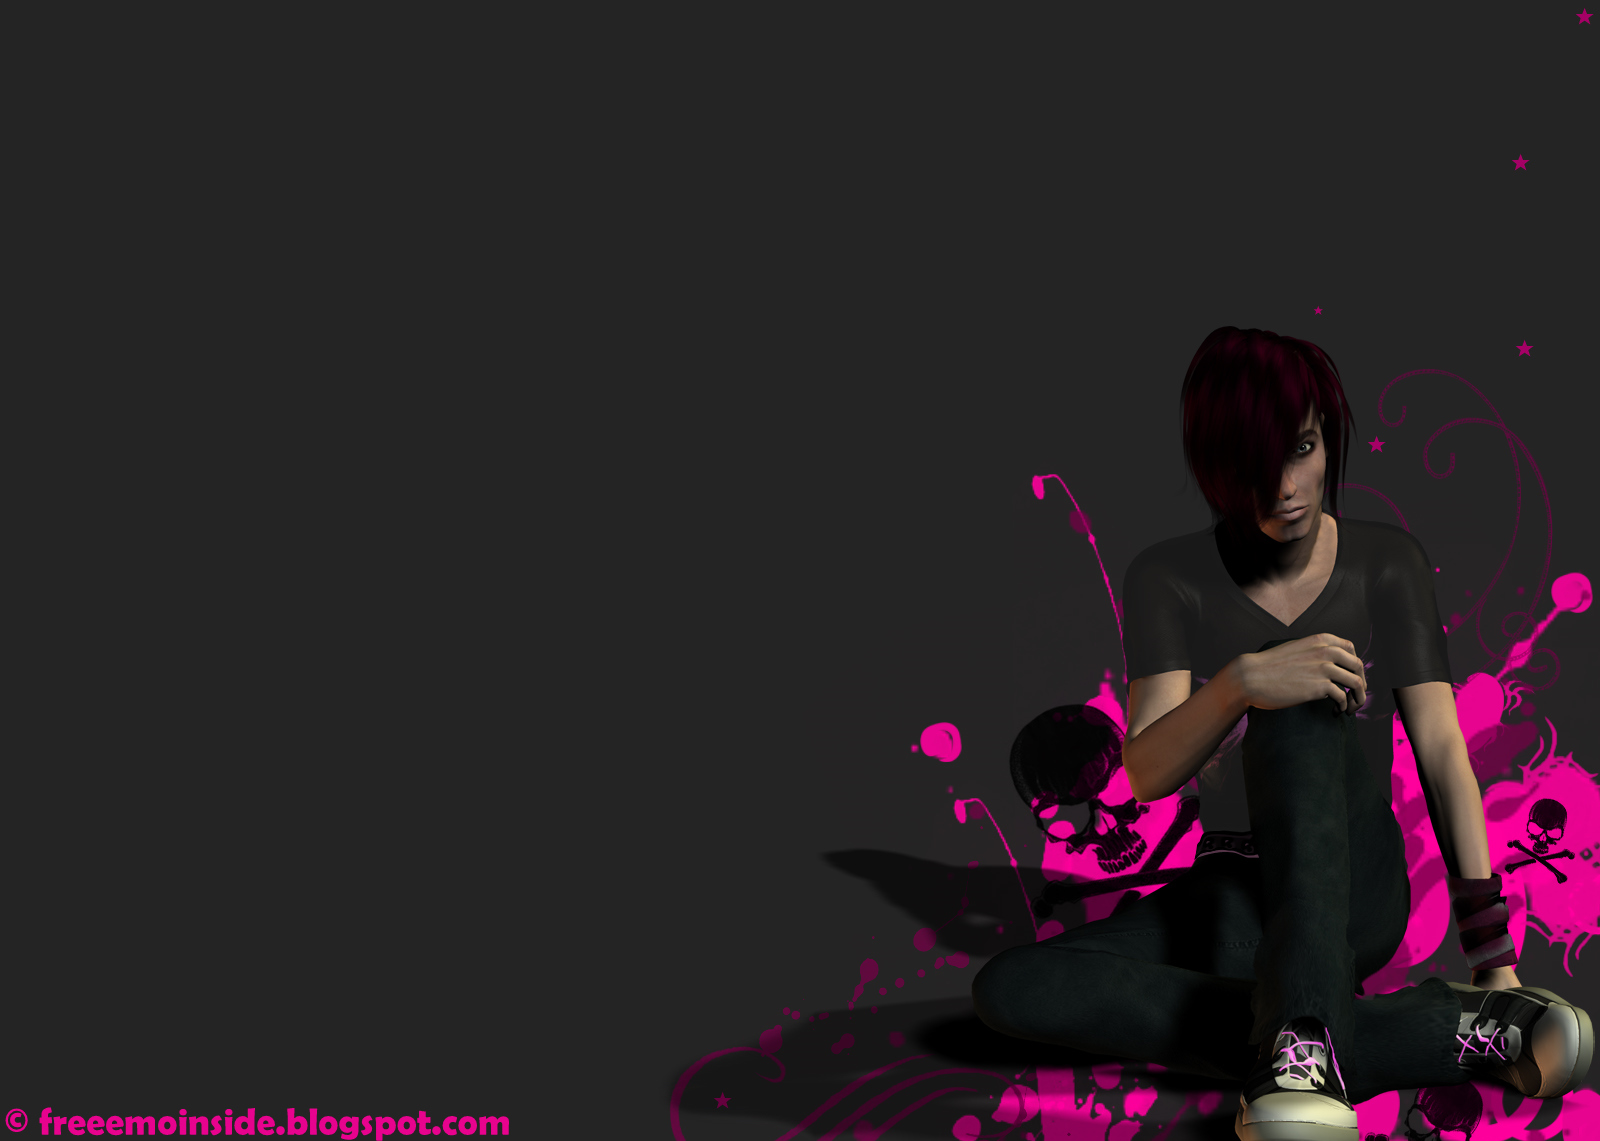 Emo Boys Wallpaper Download Wallpaper DaWallpaperz 1600x1141